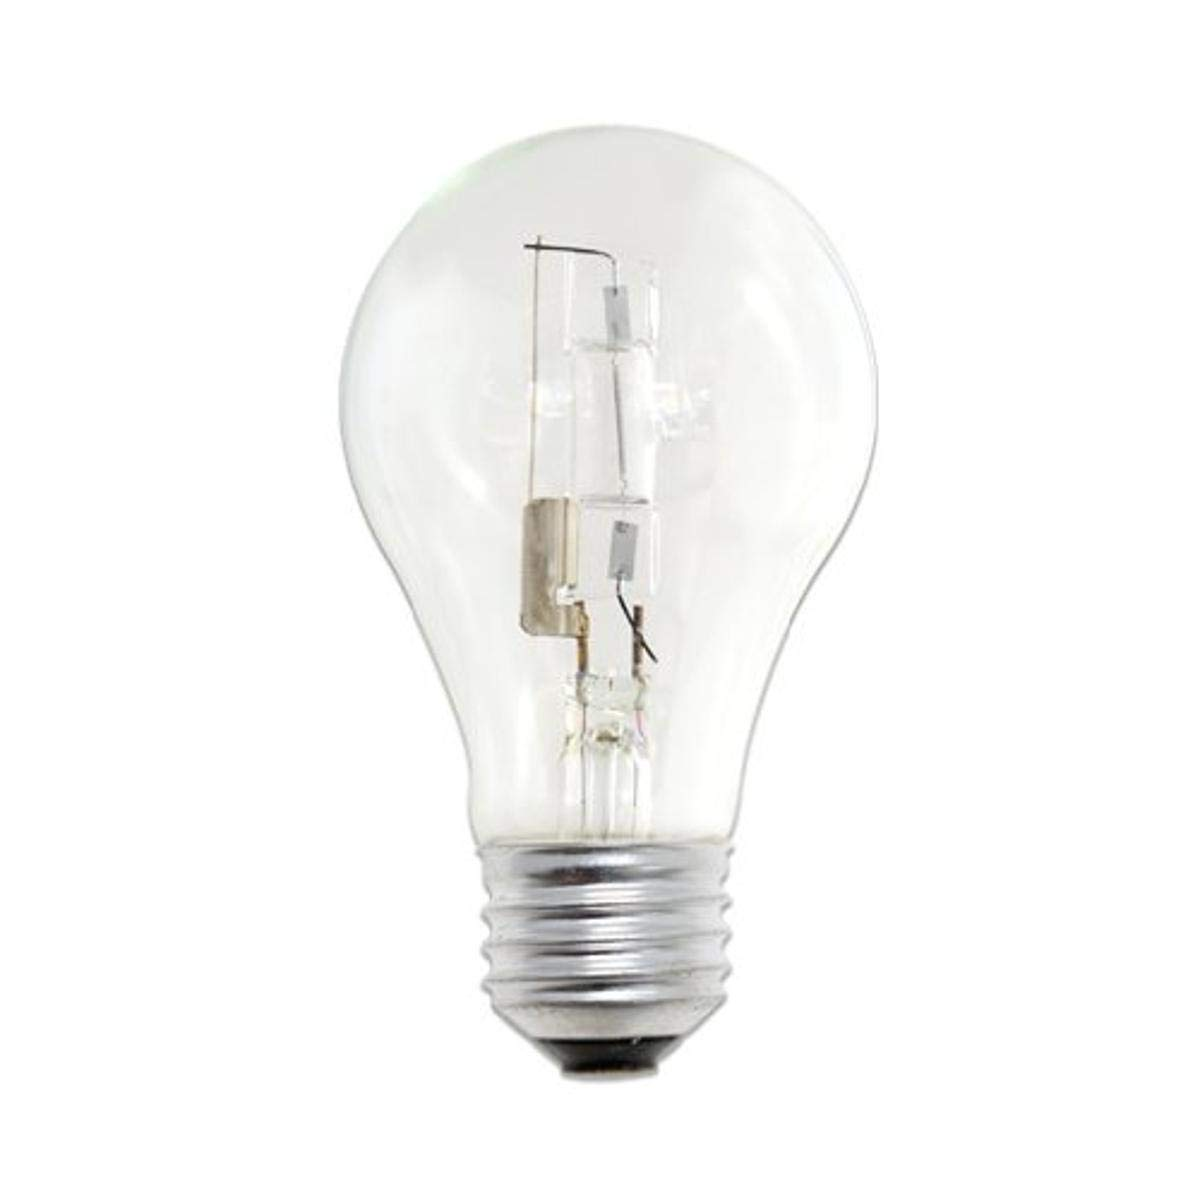 Bulbrite Halogen A19  29A19CL/ECO Eco-Friendly Halogen 29W A19, Clear, 2-Pack